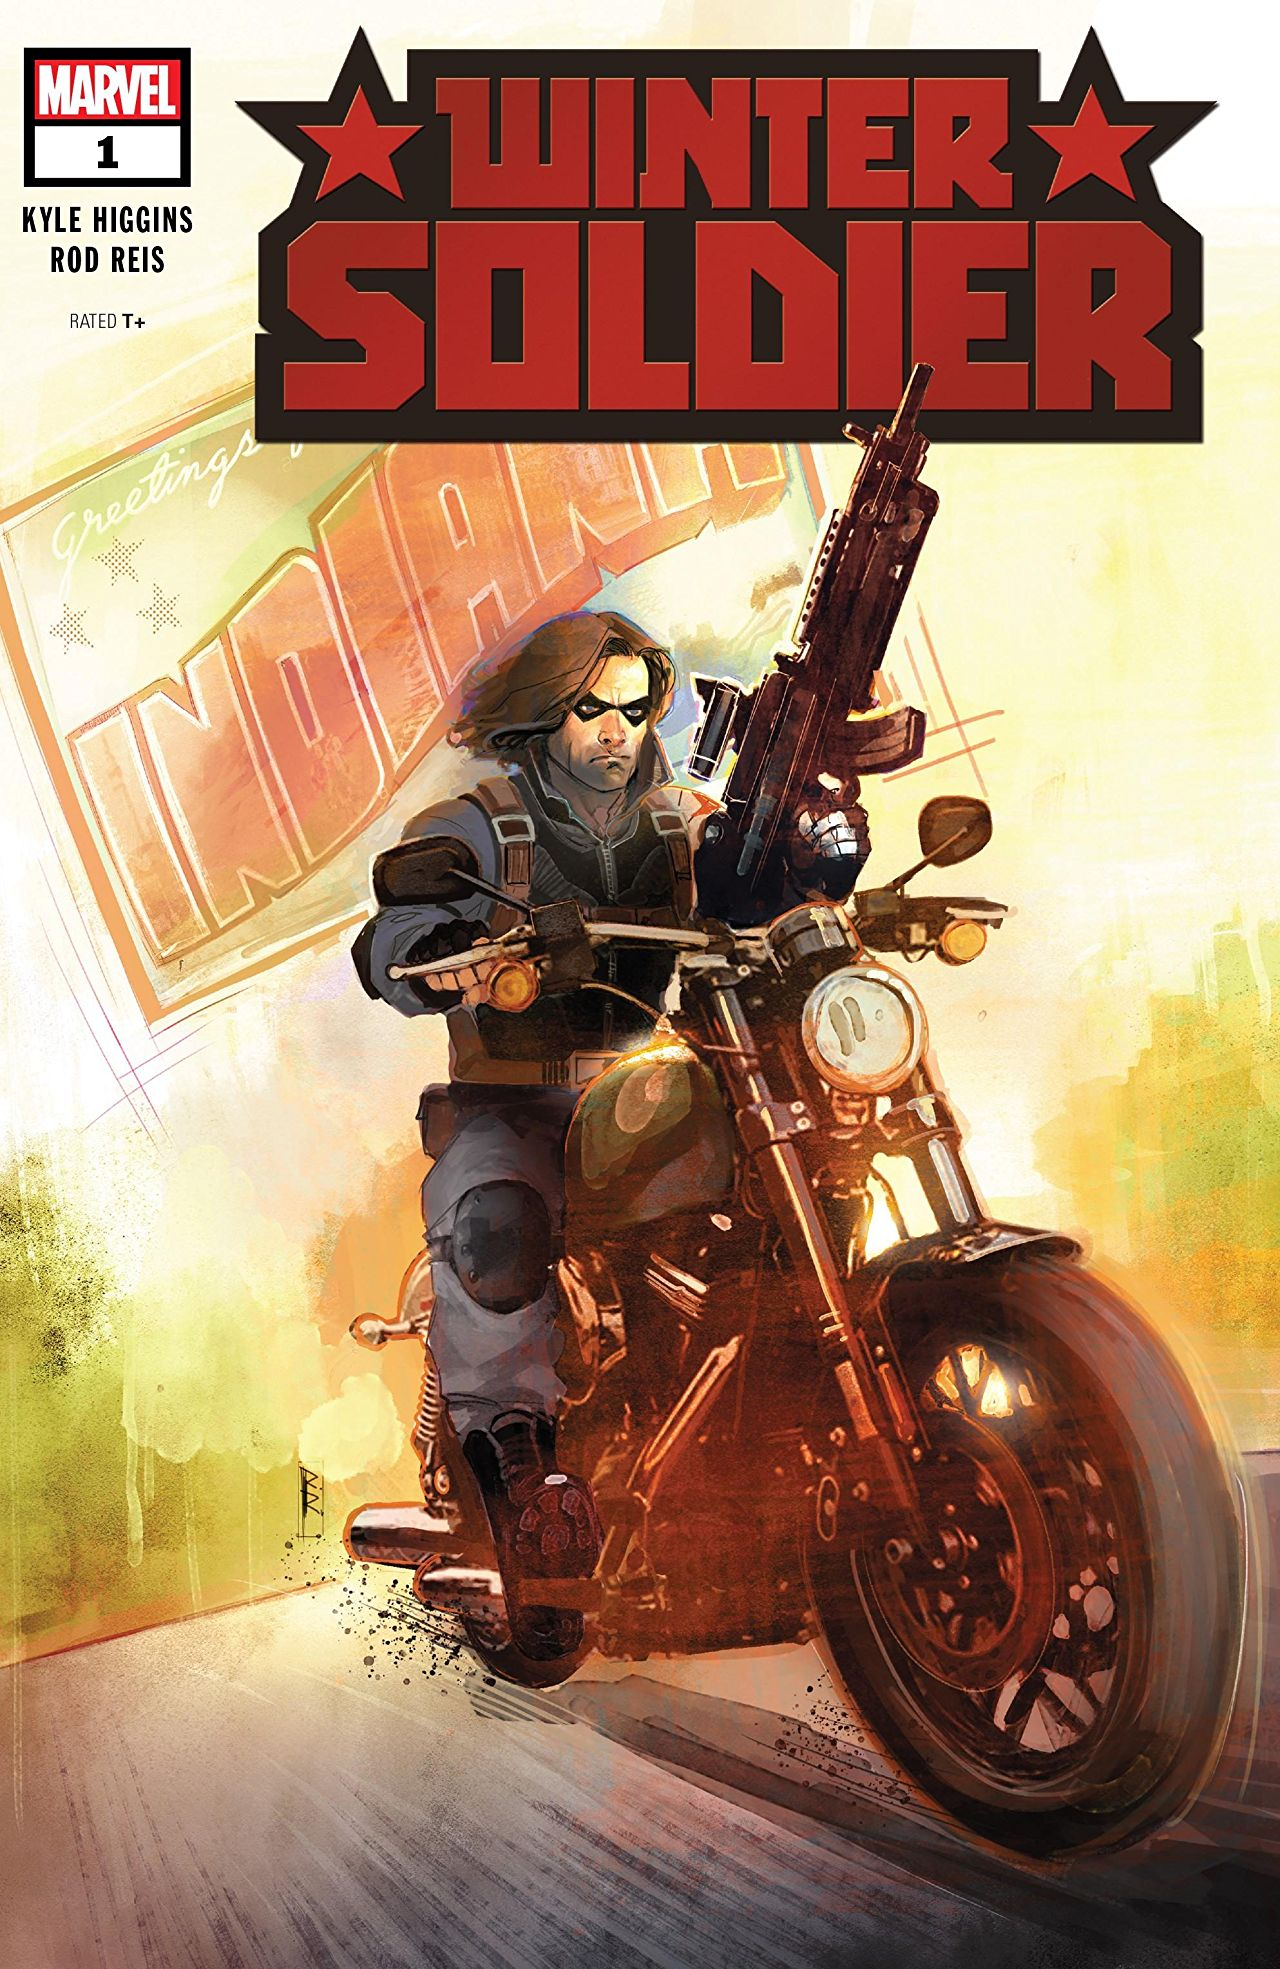 Marvel Preview: Winter Soldier #1